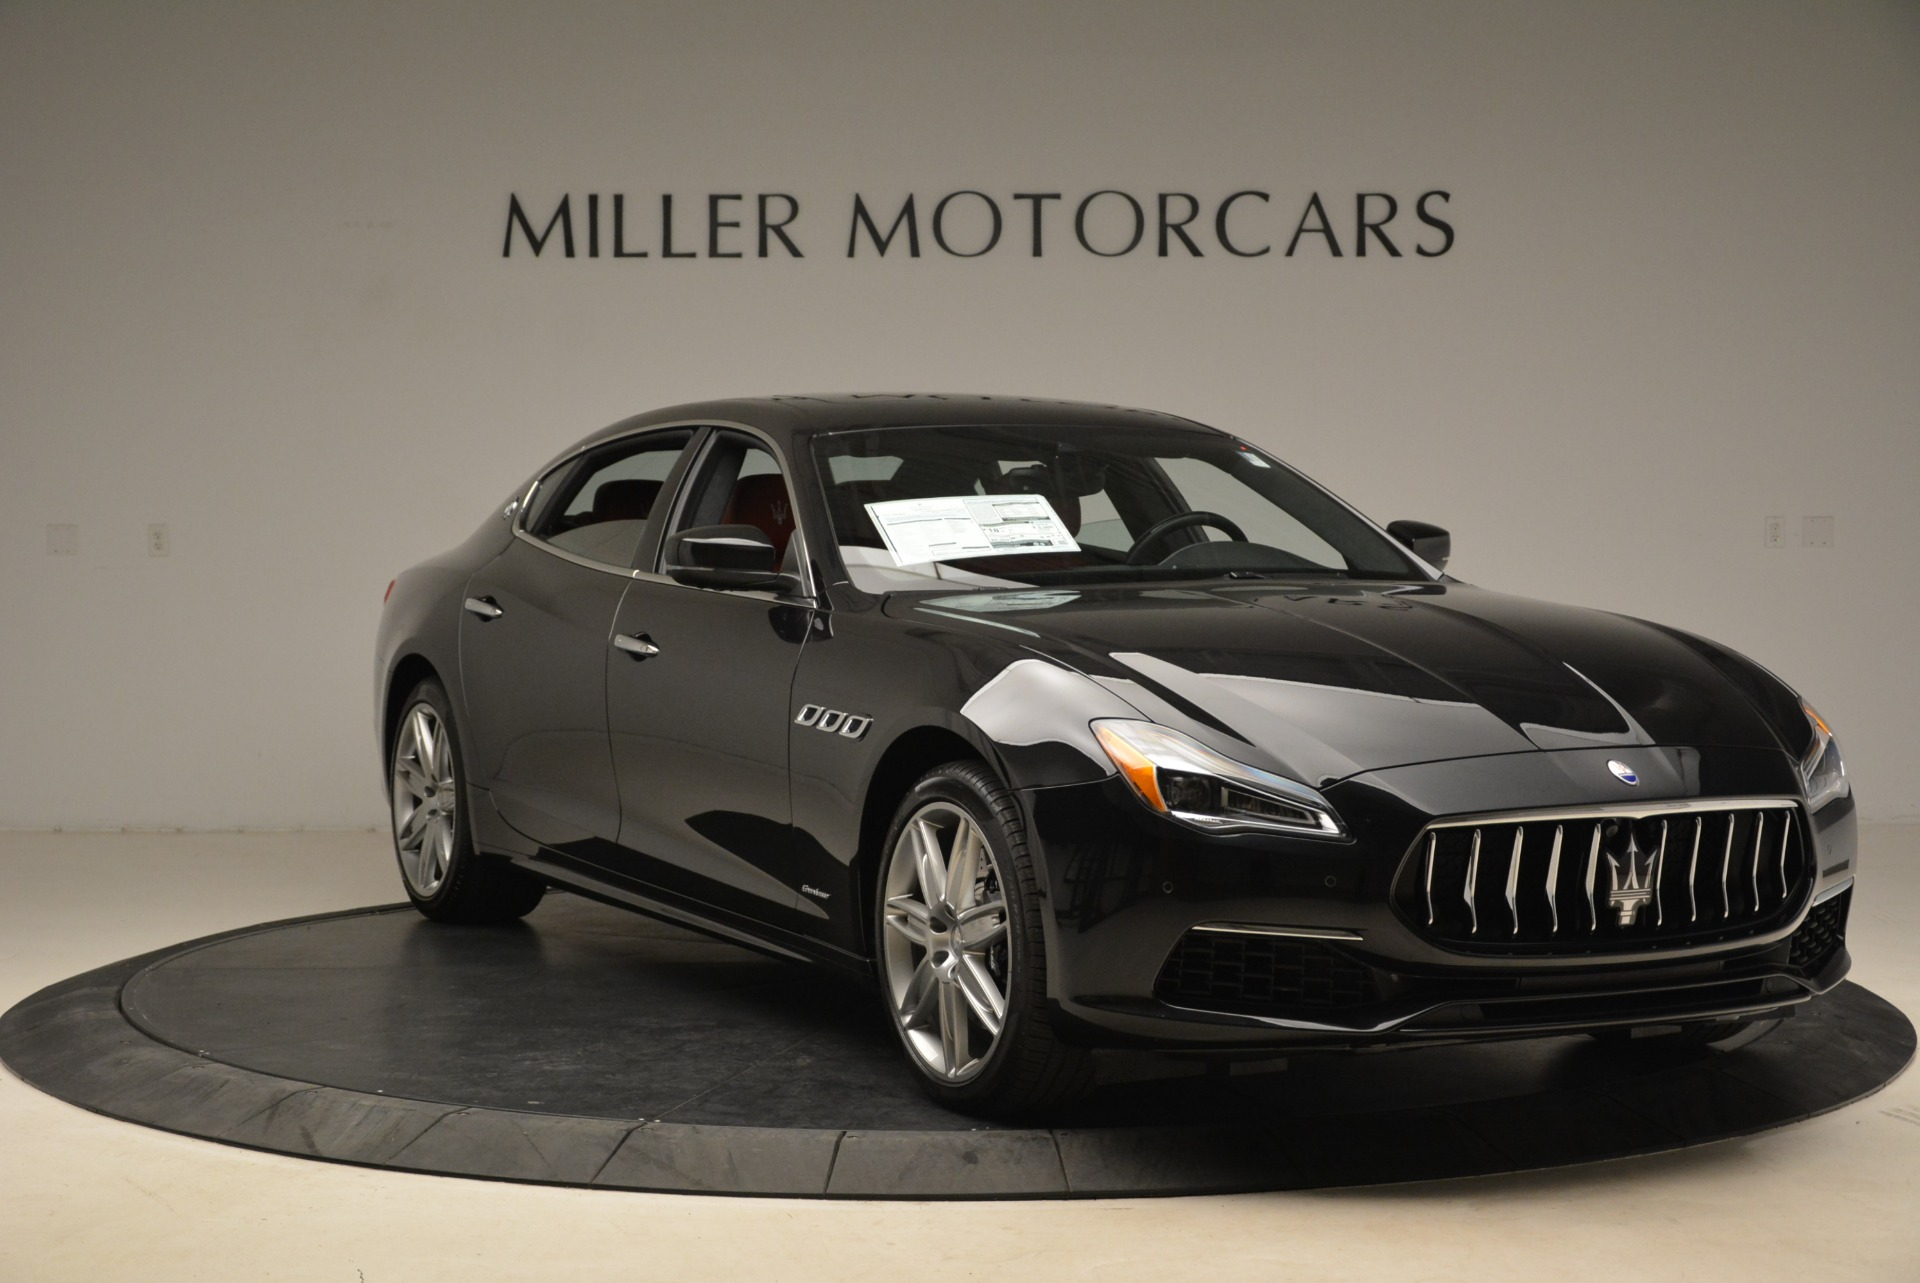 New 2018 Maserati Quattroporte S Q4 GranLusso For Sale In Greenwich, CT 2296_p11